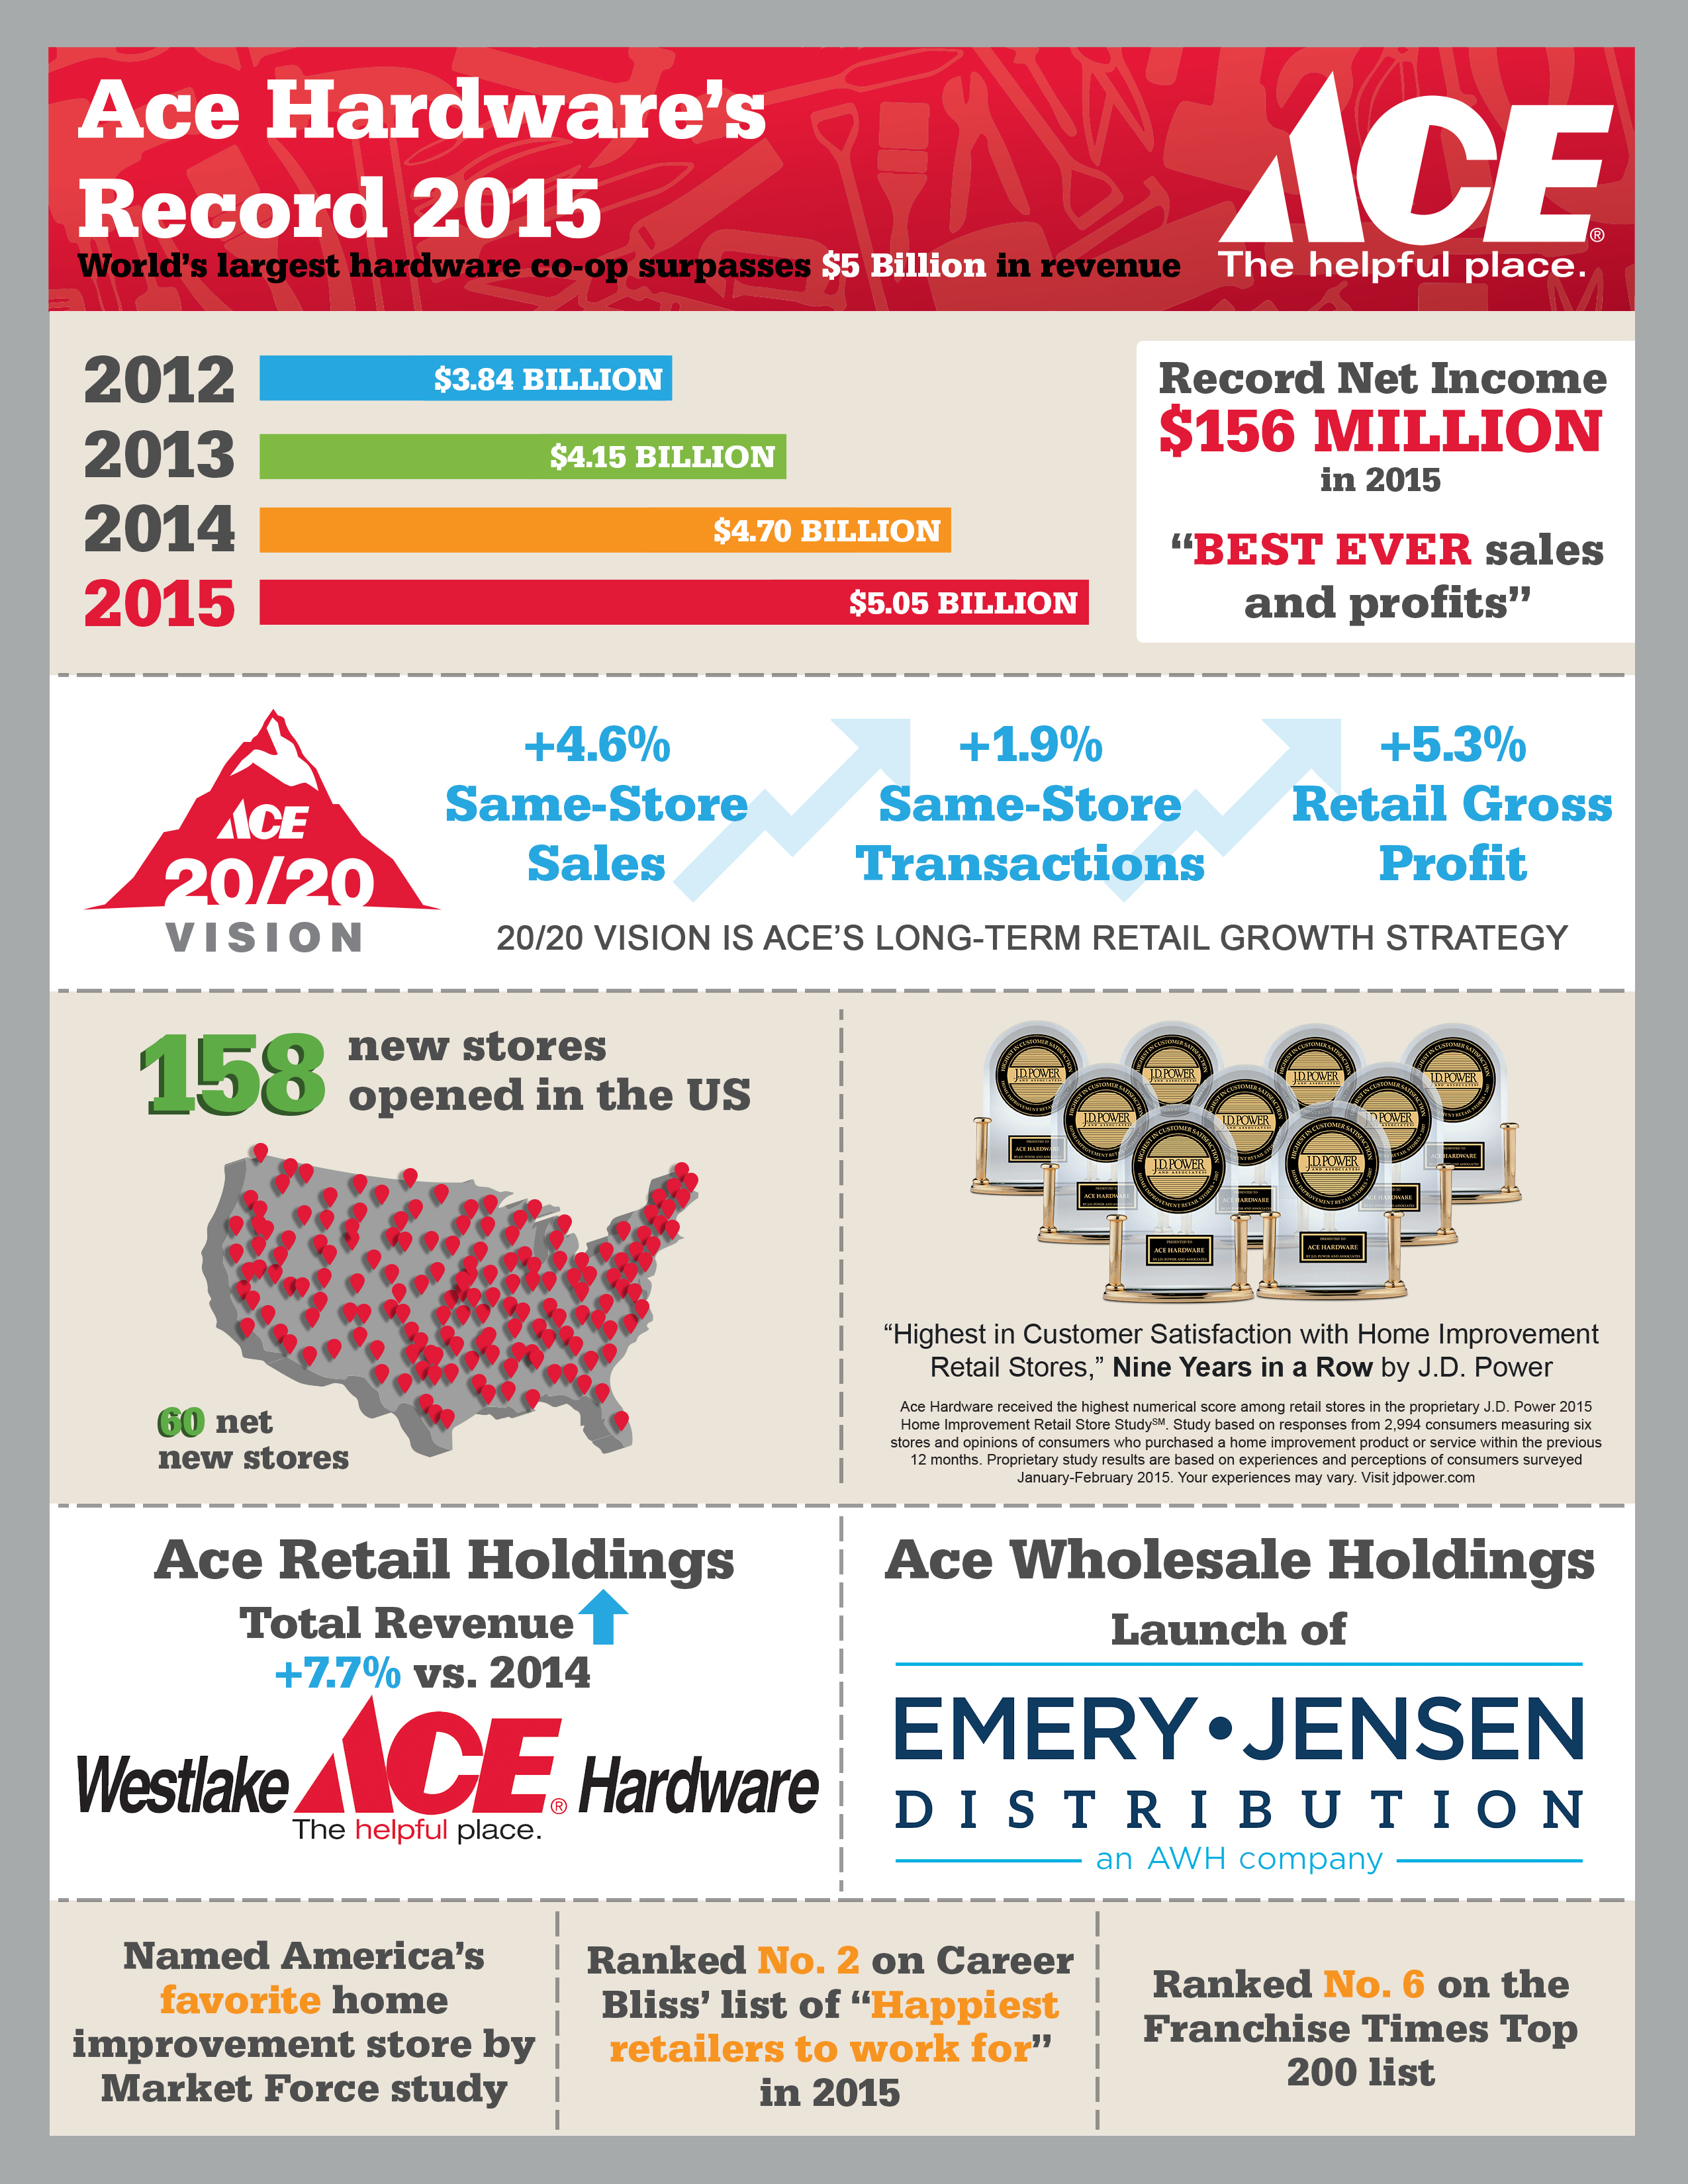 Ace Hardware Reports Record 2015 Revenues, Profits and Patronage ...